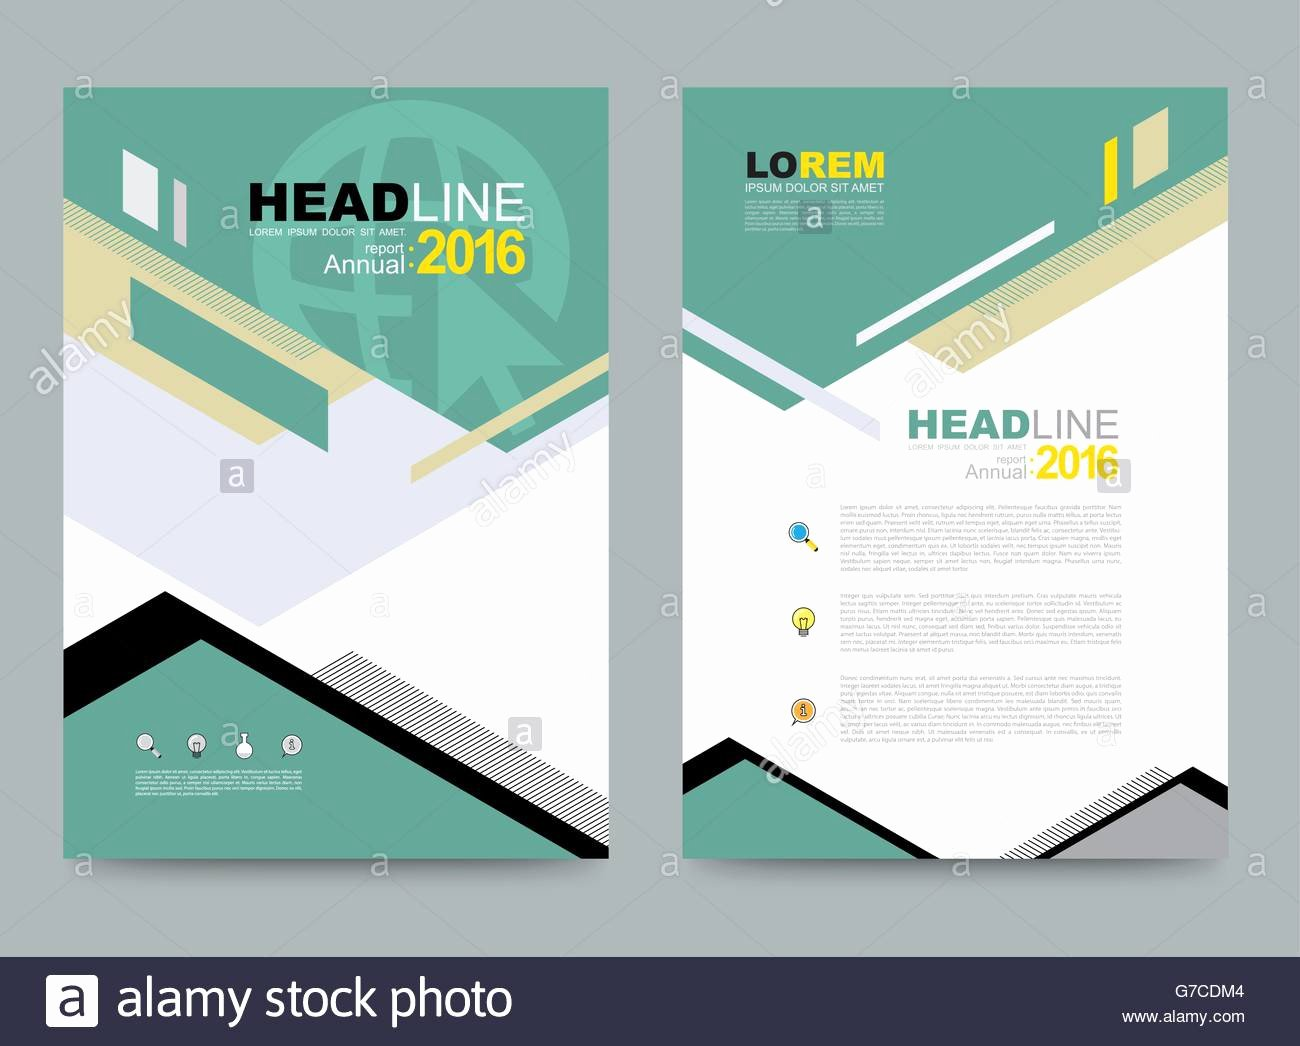 Annual Report Design Template Beautiful Cover Template Design for Business Annual Report Flyer